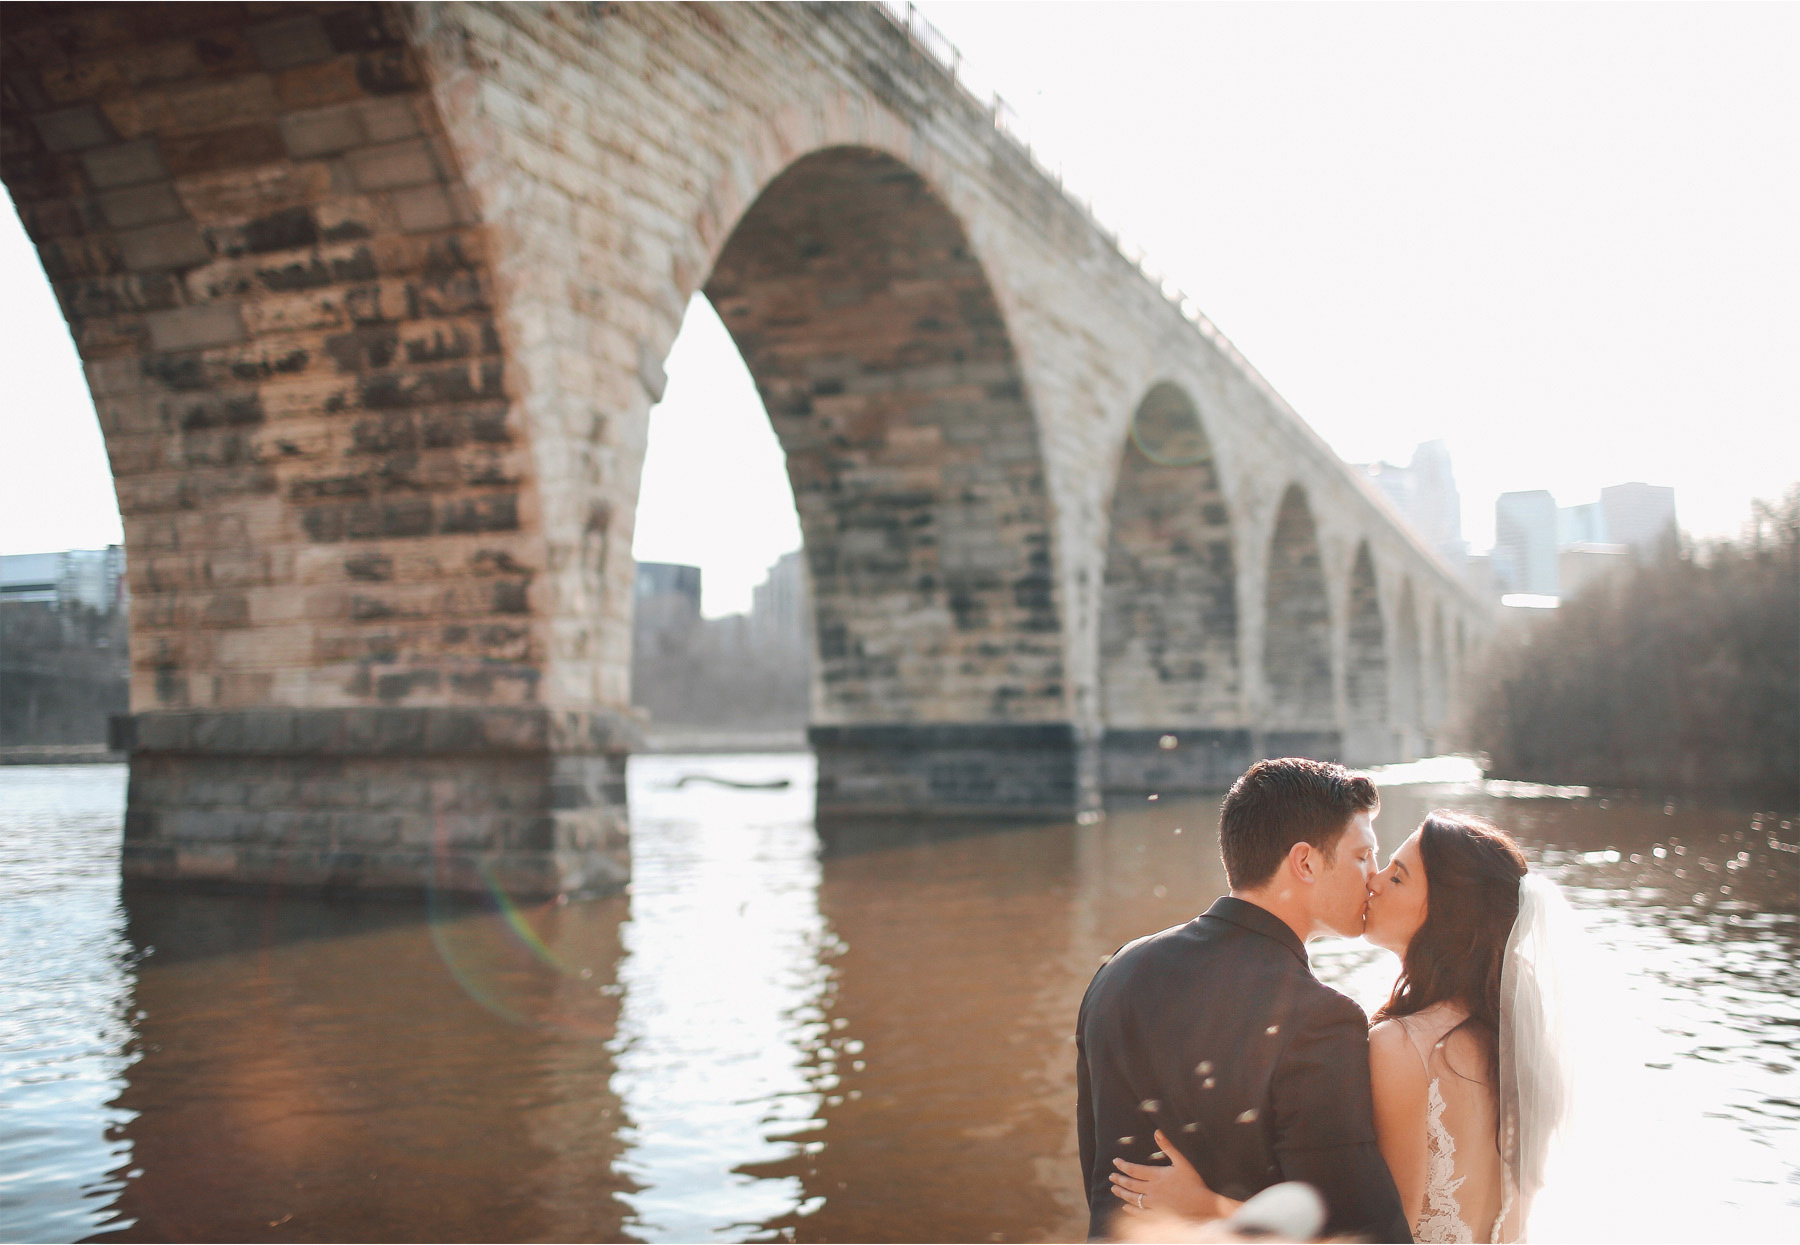 16-Minneapolis-Minnesota-Wedding-Photographer-by-Andrew-Vick-Photography-Stone-Arch-Bridge-Spring-Bride-Groom-Kiss-Mississippi-River-Vintage-Laughter-Alex-and-Andy.jpg